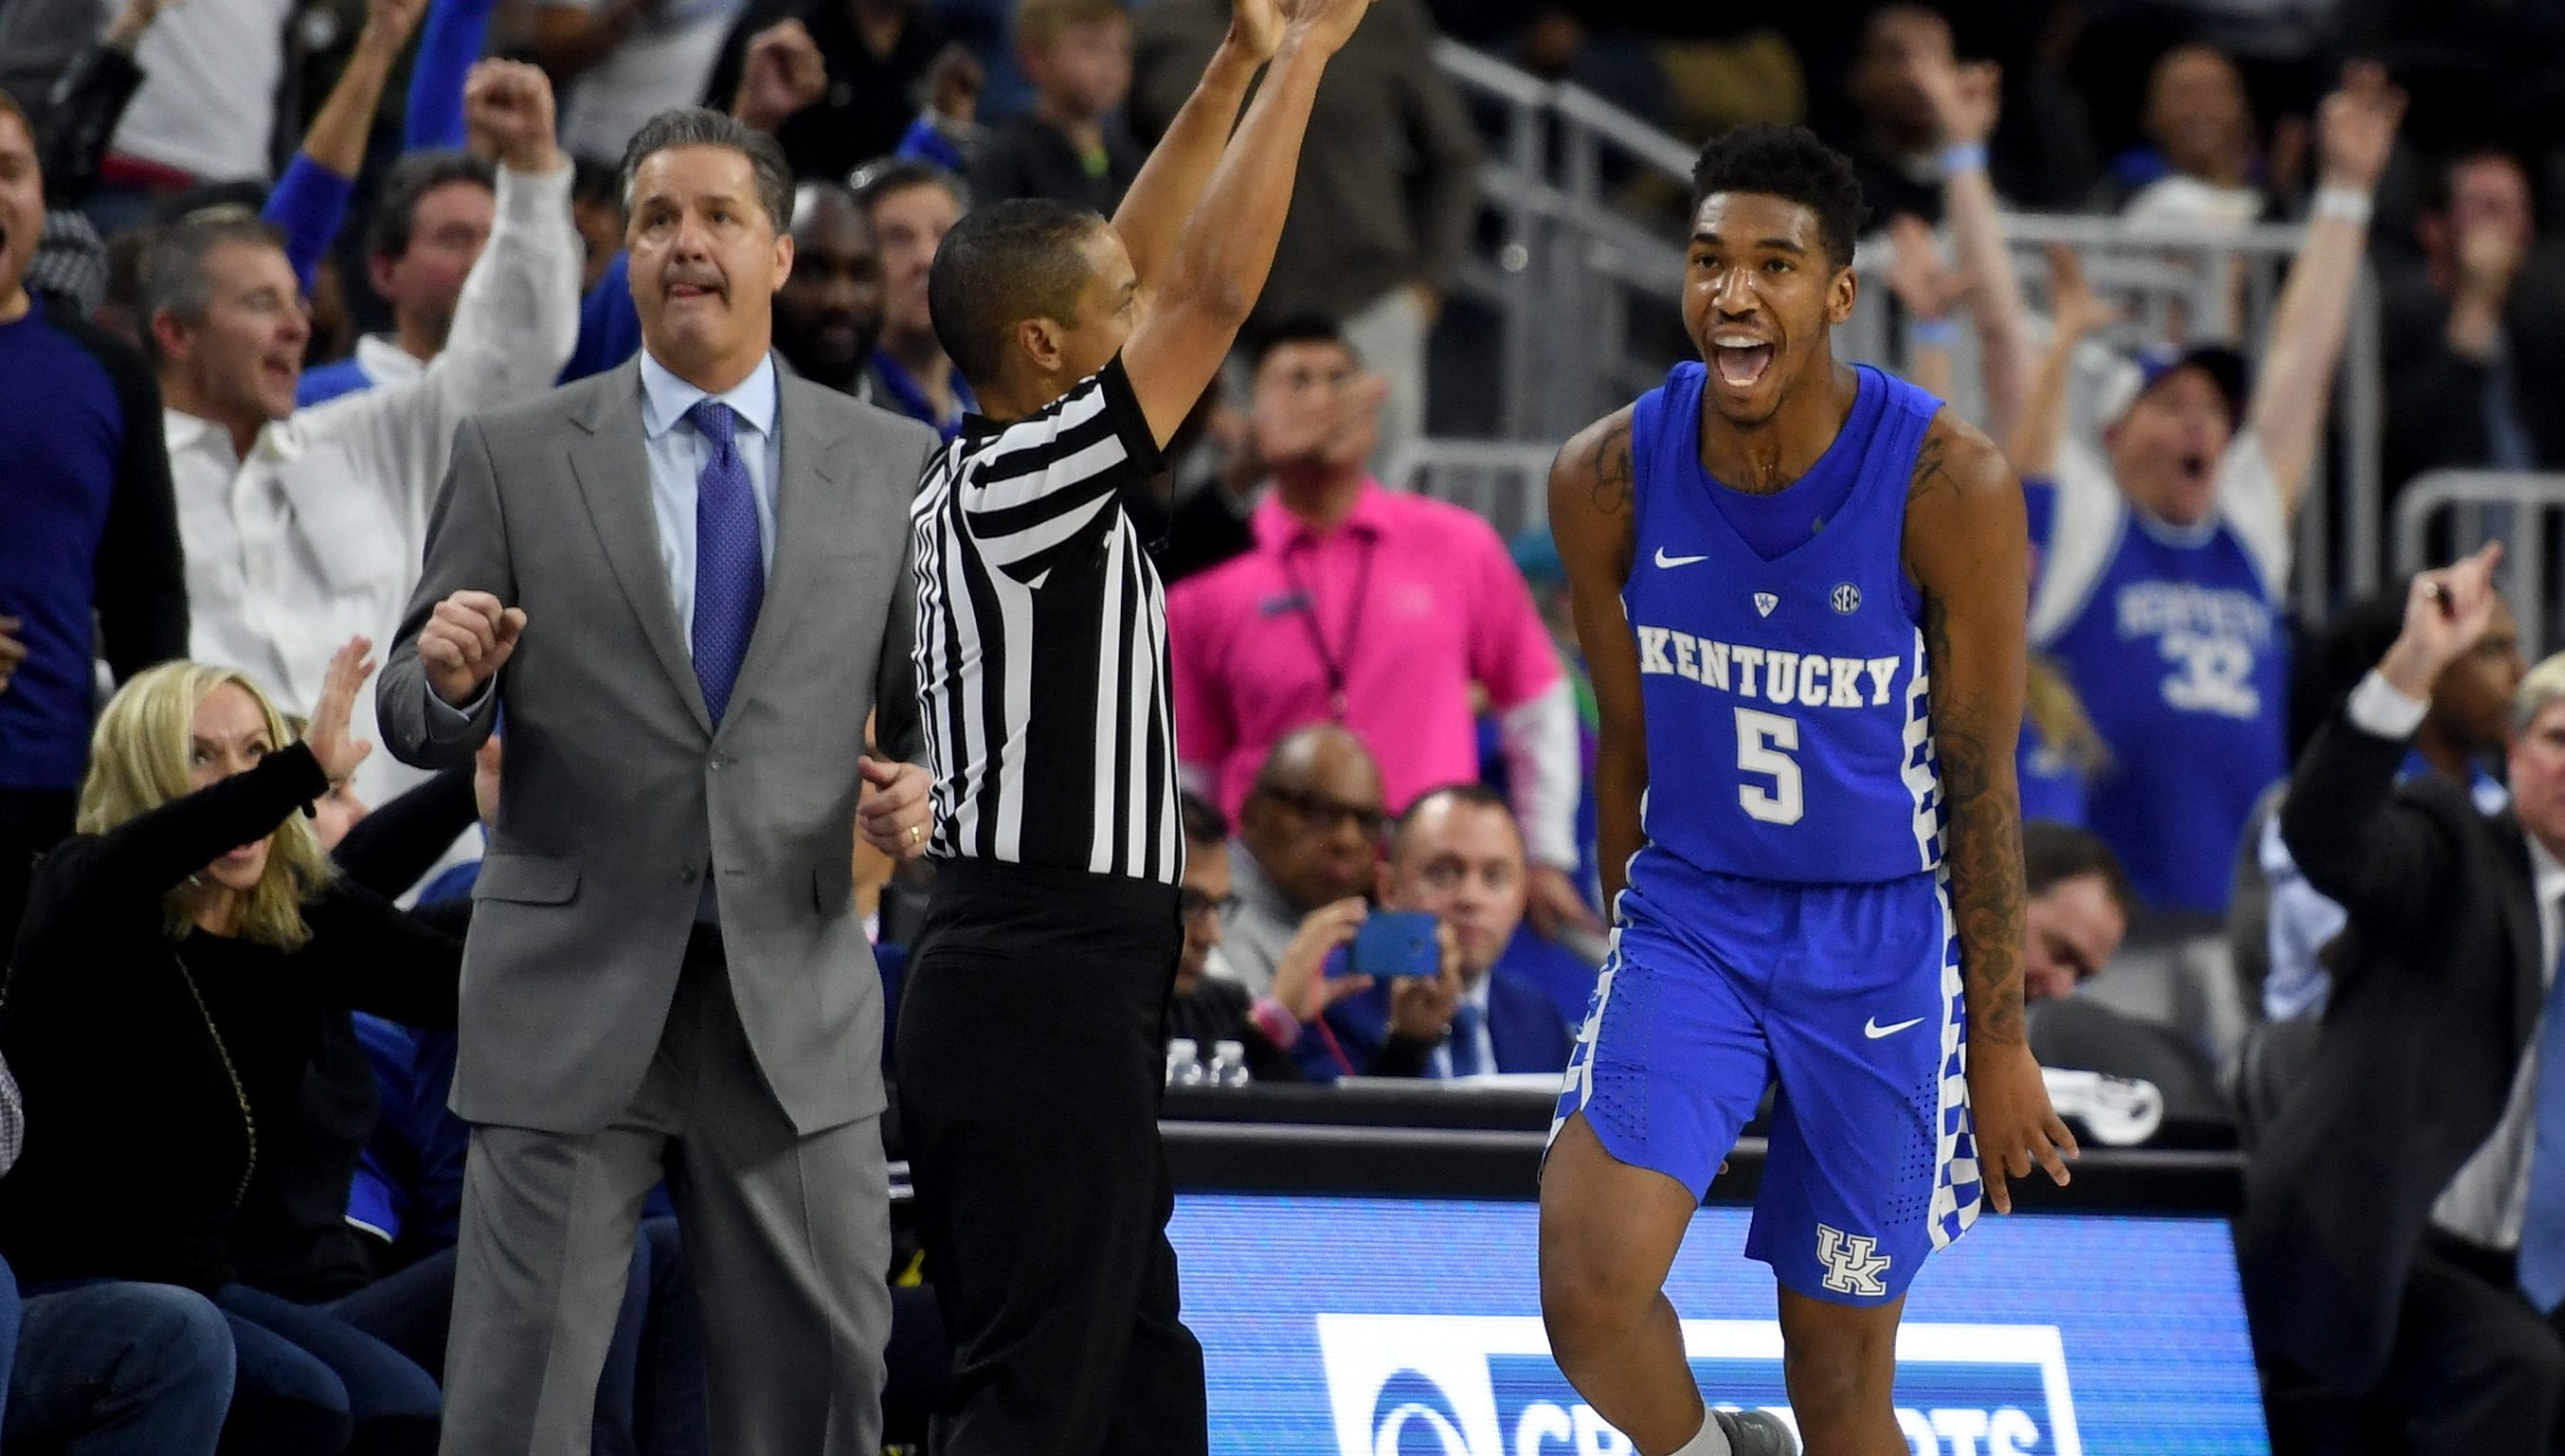 LAS VEGAS, NV - DECEMBER 17:  Head coach John Calipari of the Kentucky Wildcats looks on as Malik Monk #5 celebrates after hitting a go-ahead 3-pointer late in the team's 103-100 win over the North Carolina Tar Heels during the CBS Sports Classic at T-Mobile Arena on December 17, 2016 in Las Vegas, Nevada.  (Photo by Ethan Miller/Getty Images)